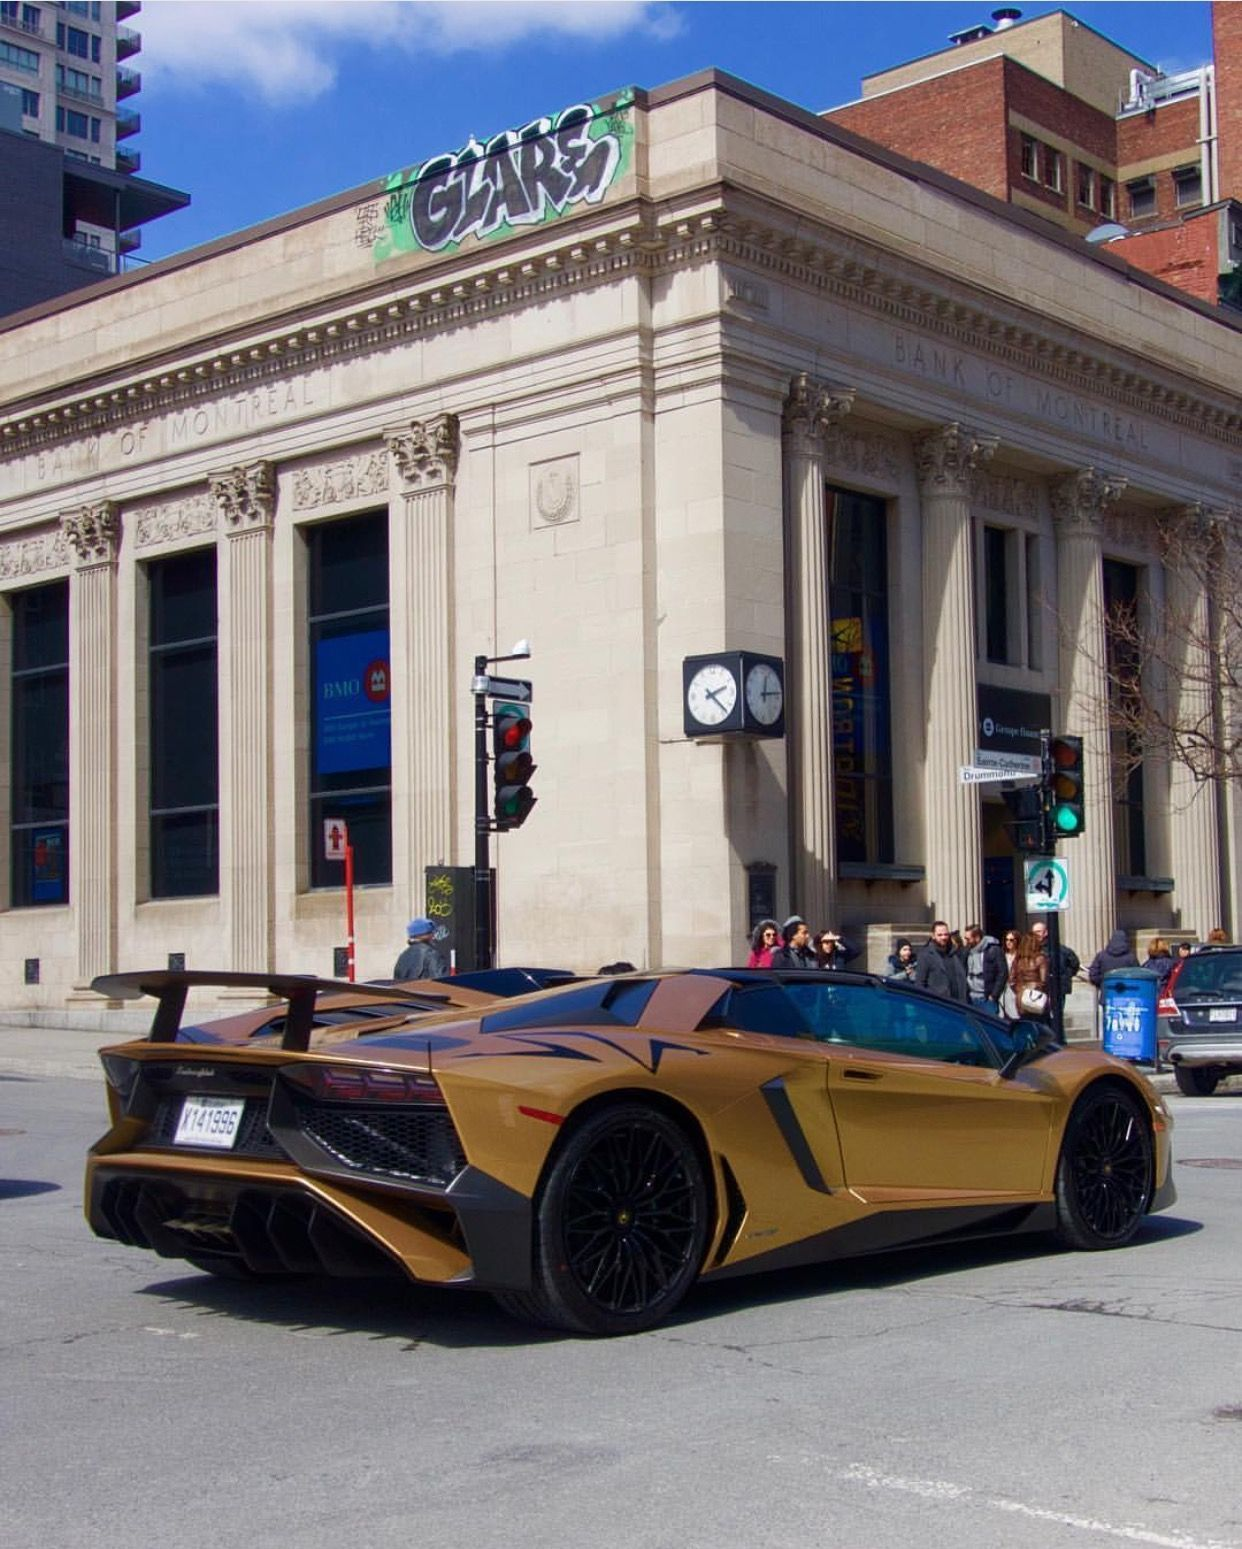 Lamborghini Aventador Super Veloce Roadster Painted In Oro Elios Photo  Taken By: @tg3m_photography On